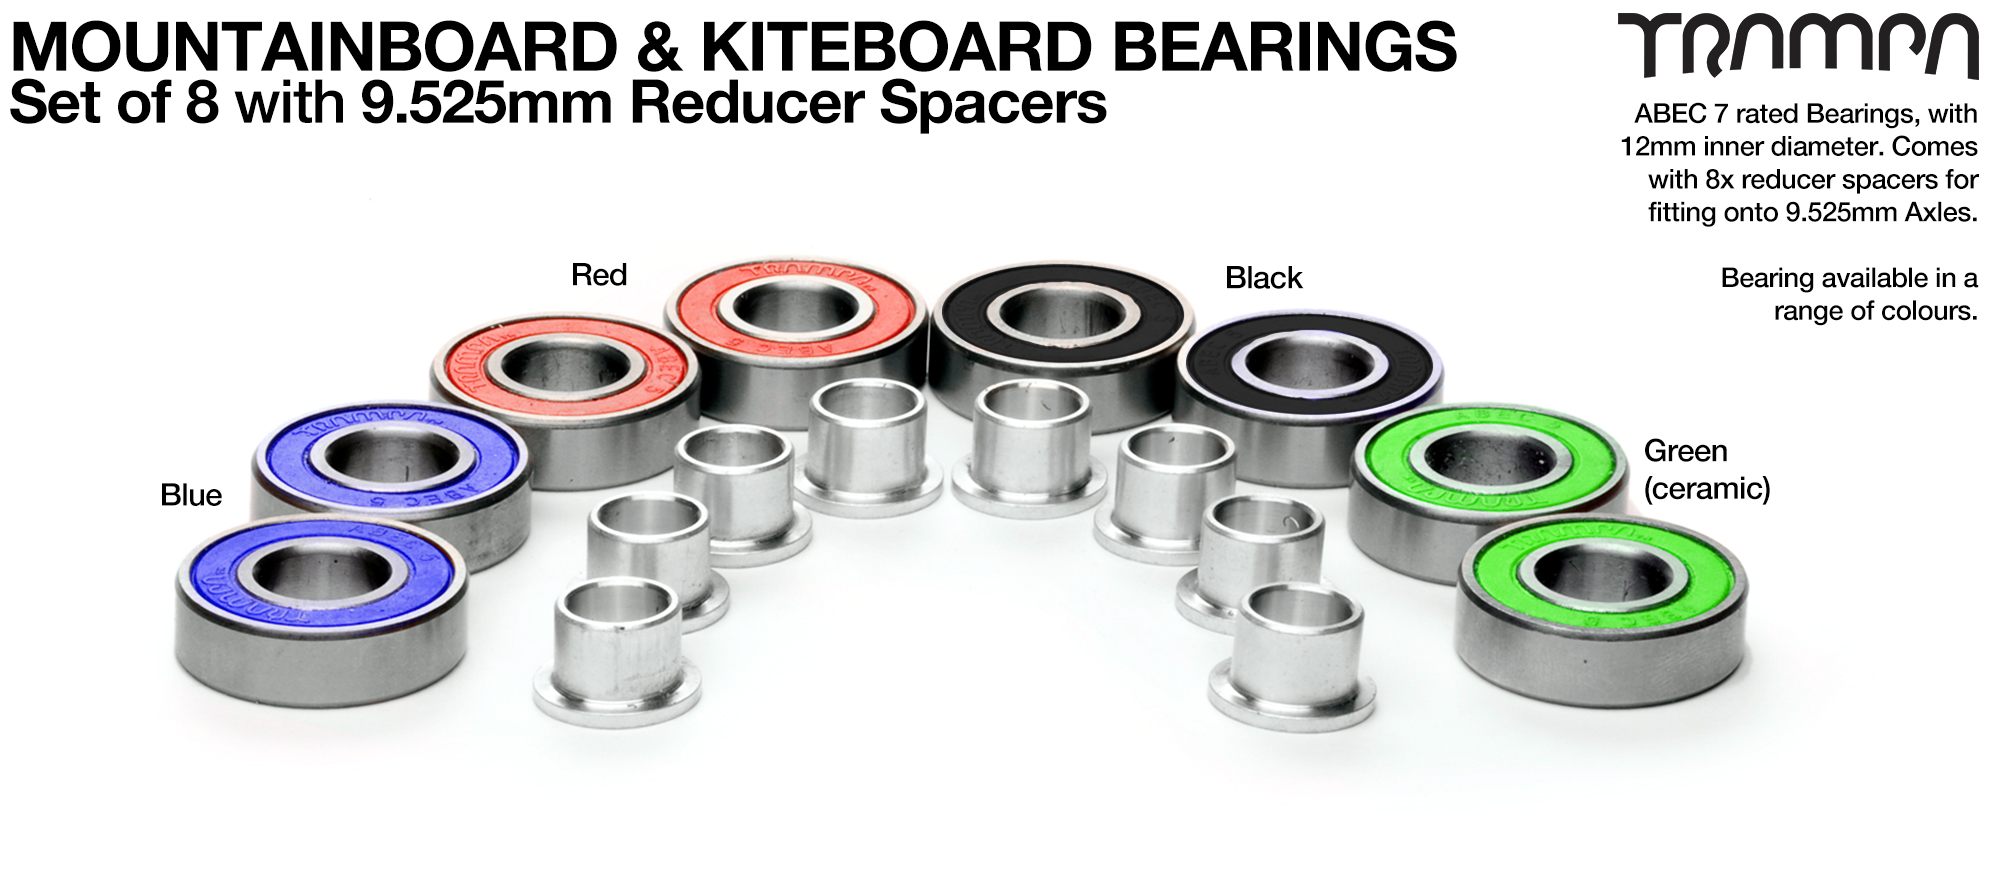 8x RED 22mm Bearing with 9.525mm reducer spacers